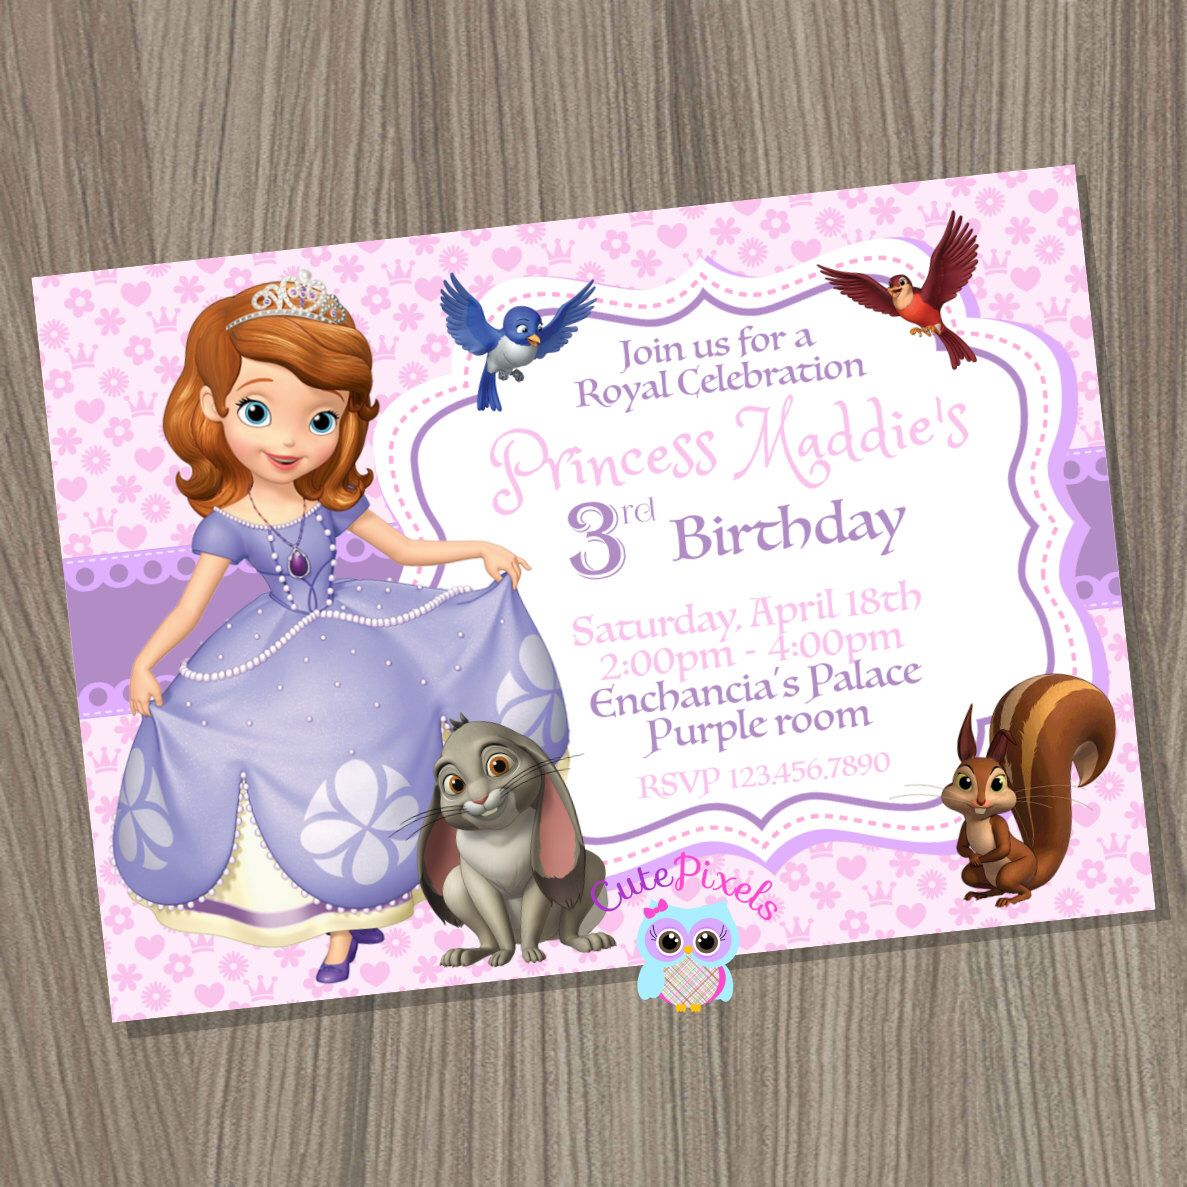 Princess sofia invitation sofia the first invitation sofia princess sofia invitation sofia the first invitation sofia birthday sofia the first party stopboris Image collections